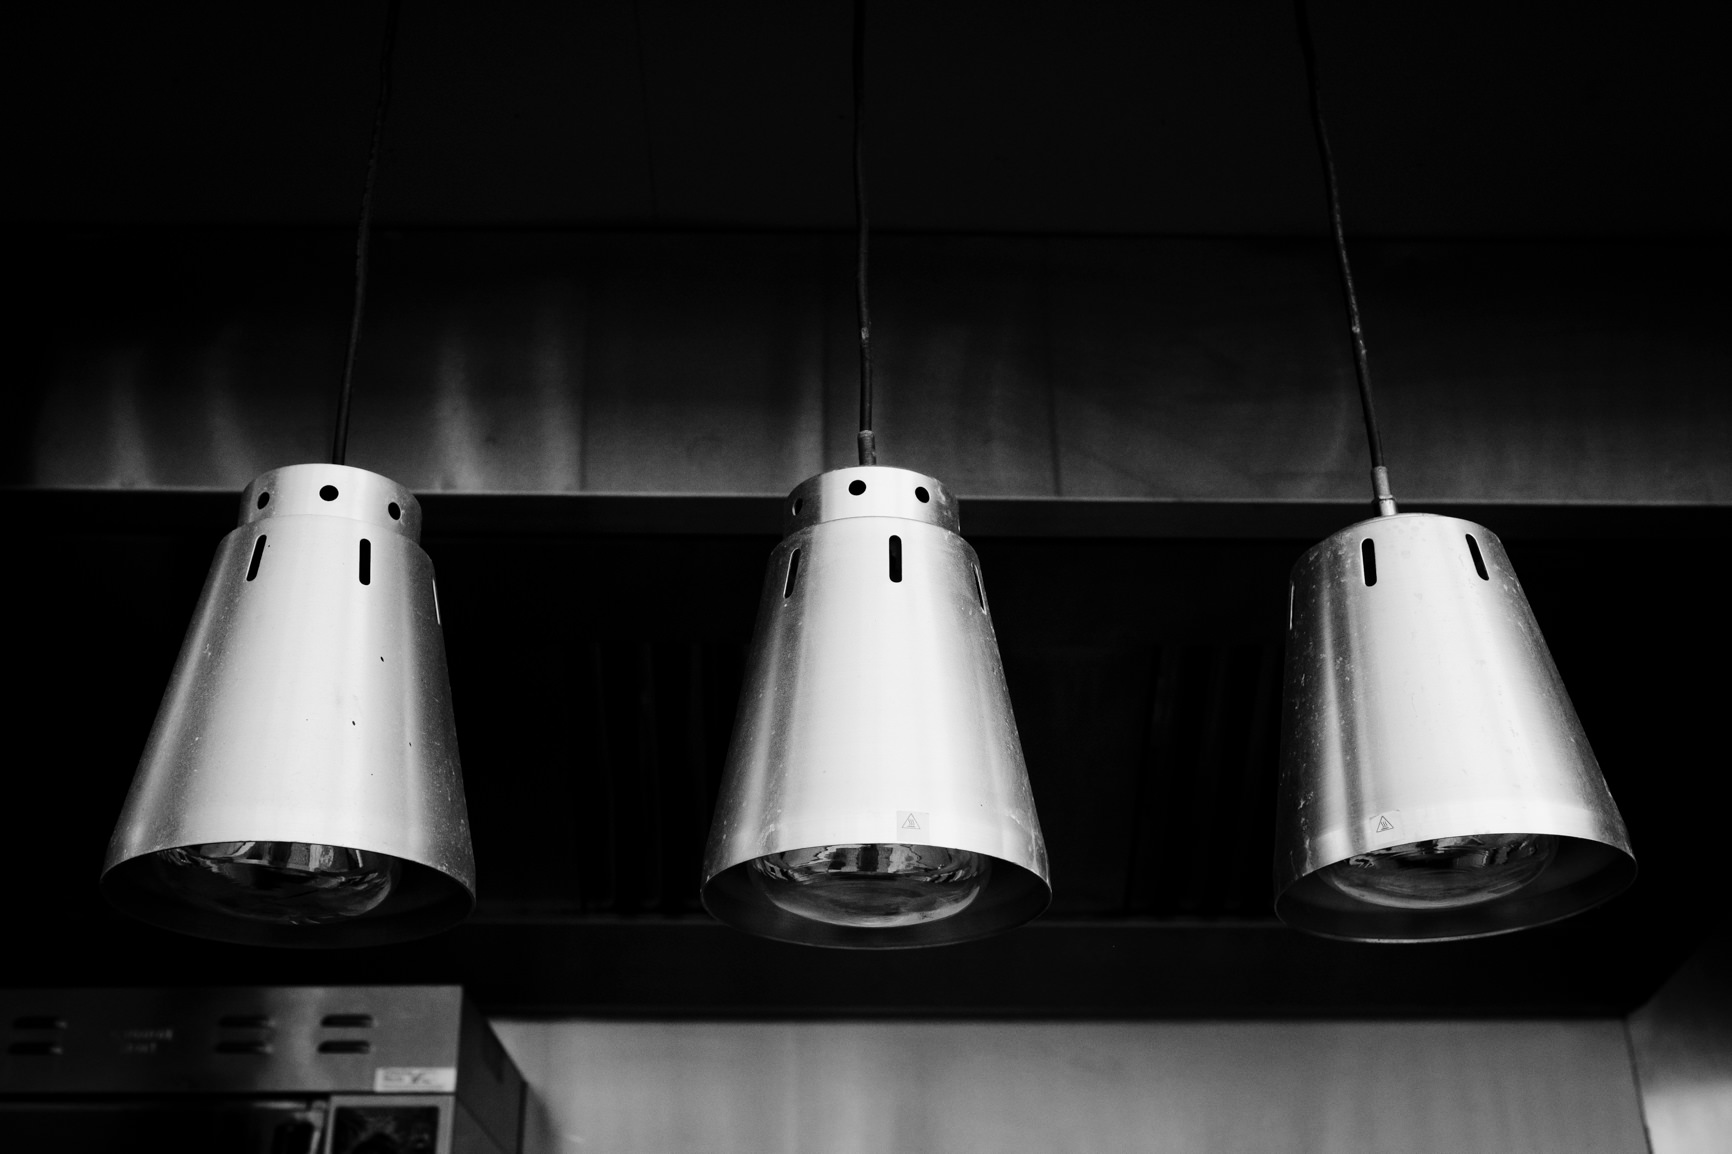 Three steel lampshades hanging from roof of outdoor area.